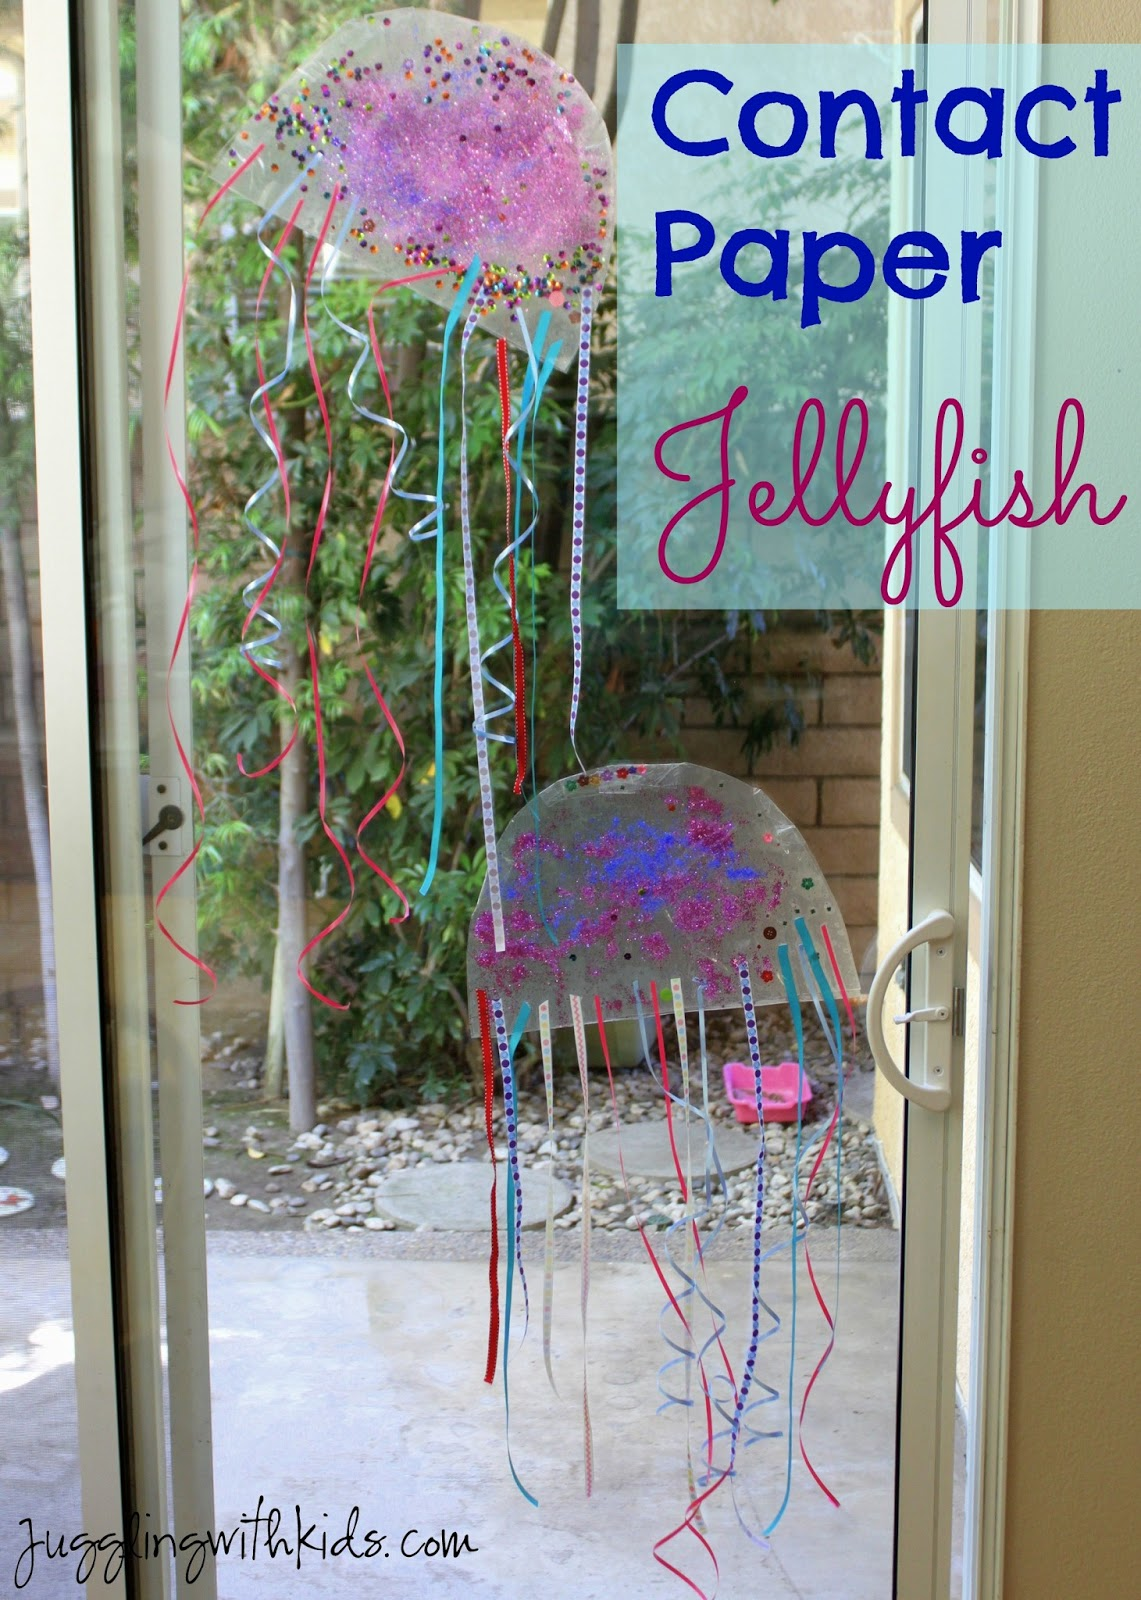 Contact Paper Jellyfish Juggling With Kids